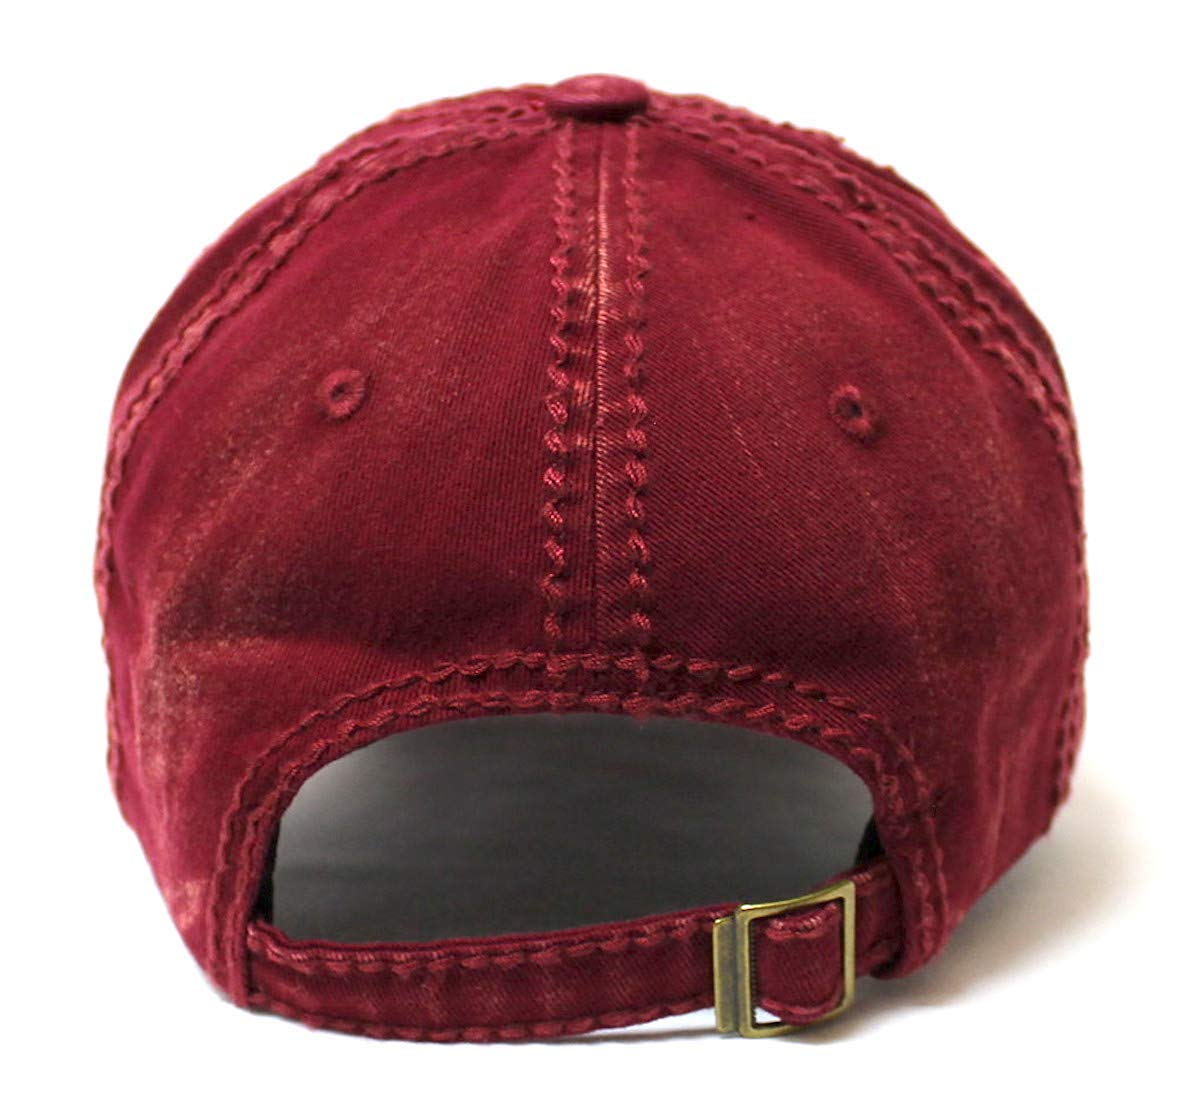 Classic Low Profile Bad Hair Day Original Ball Cap, Varsity Burgundy - Caps 'N Vintage